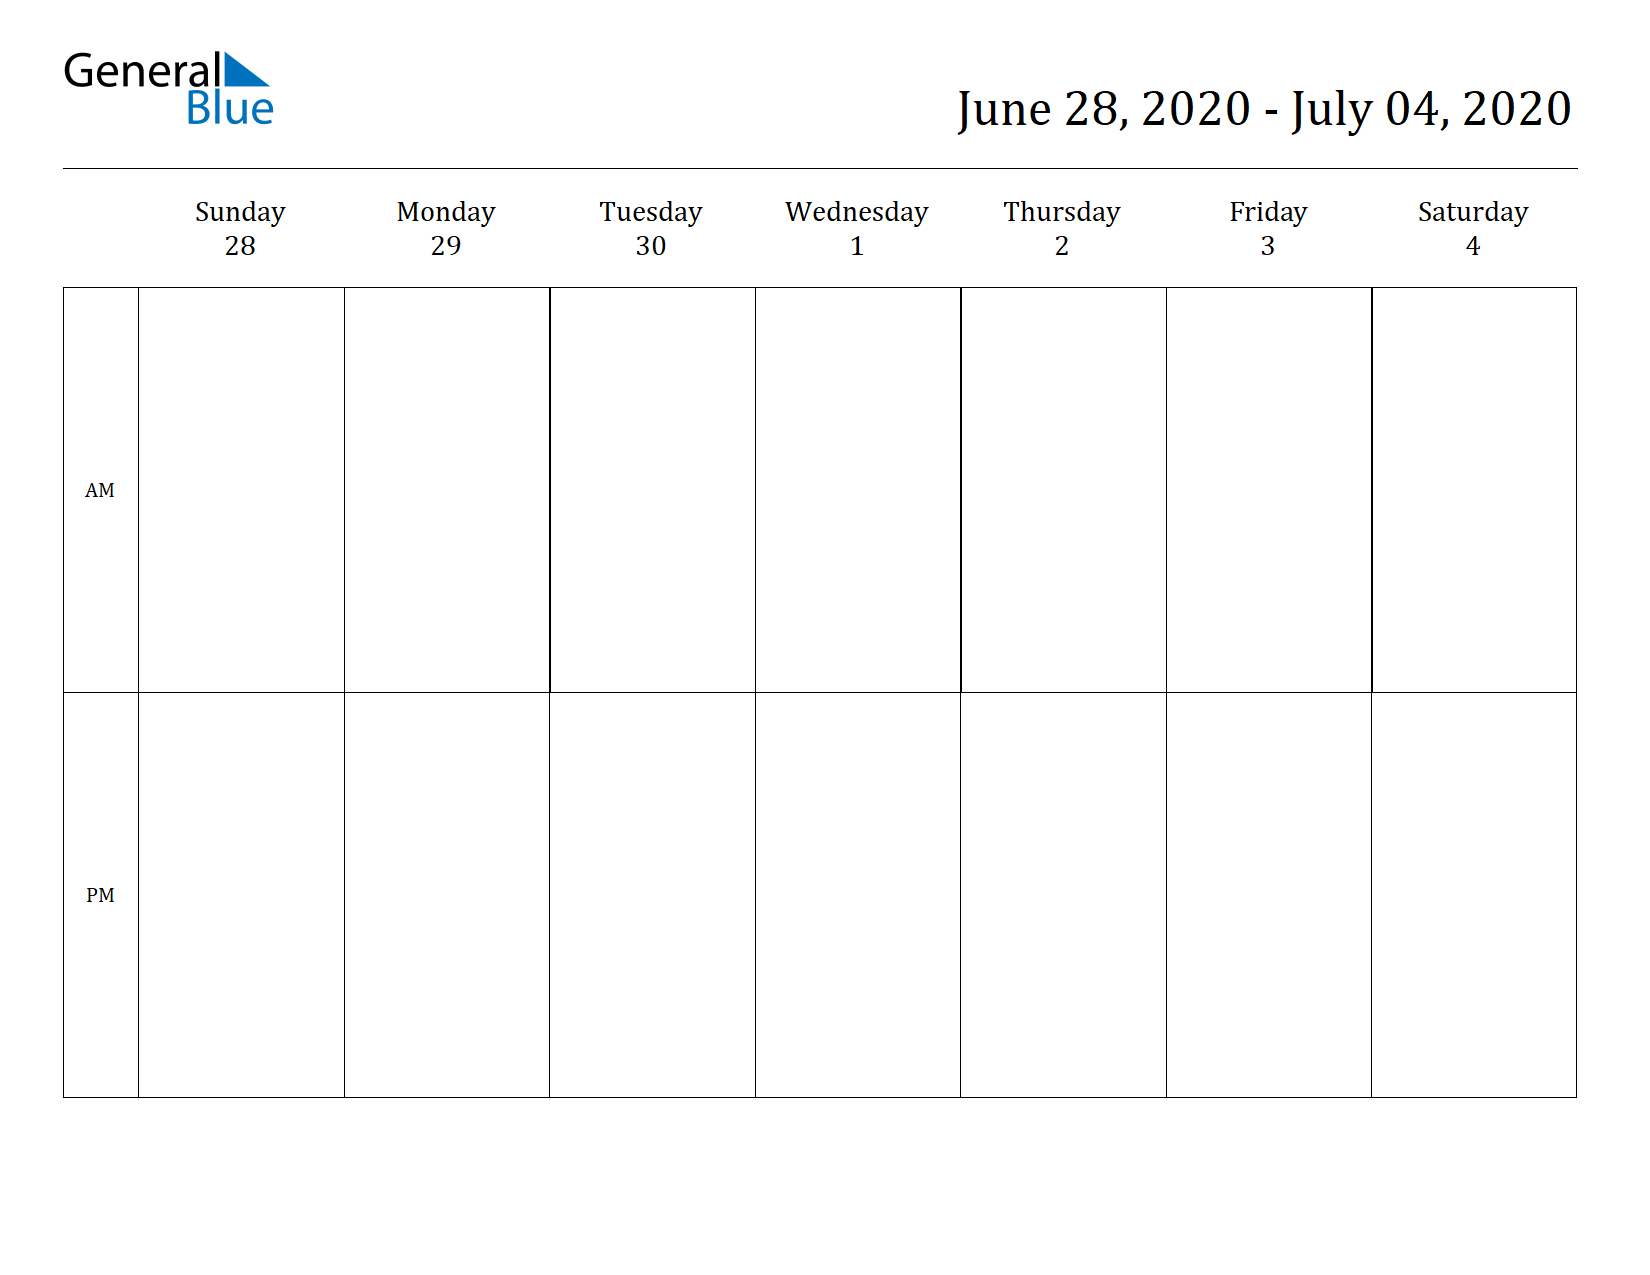 Weekly Calendar for Jun 28, 2020 to Jul 04, 2020